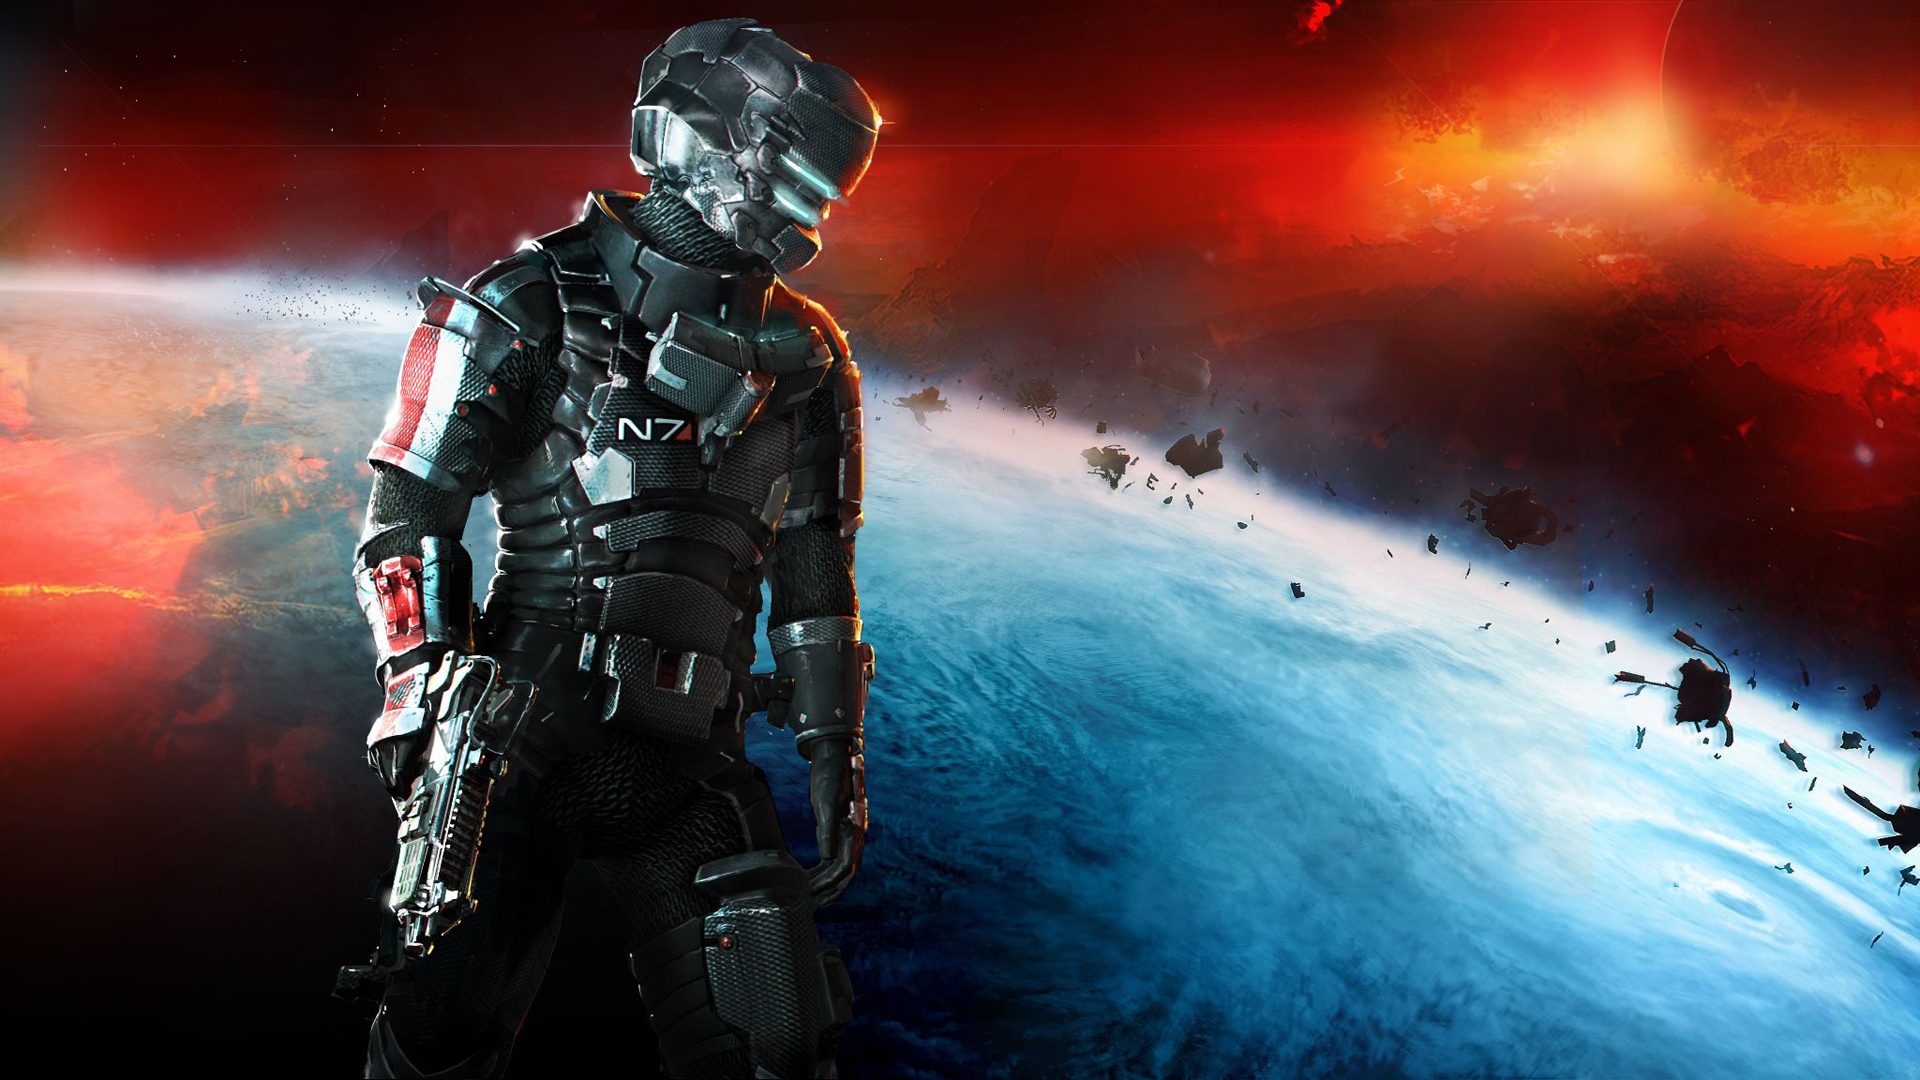 Dead Space 3 Mass Effect N7 Armor Wallpapers | HD Wallpapers